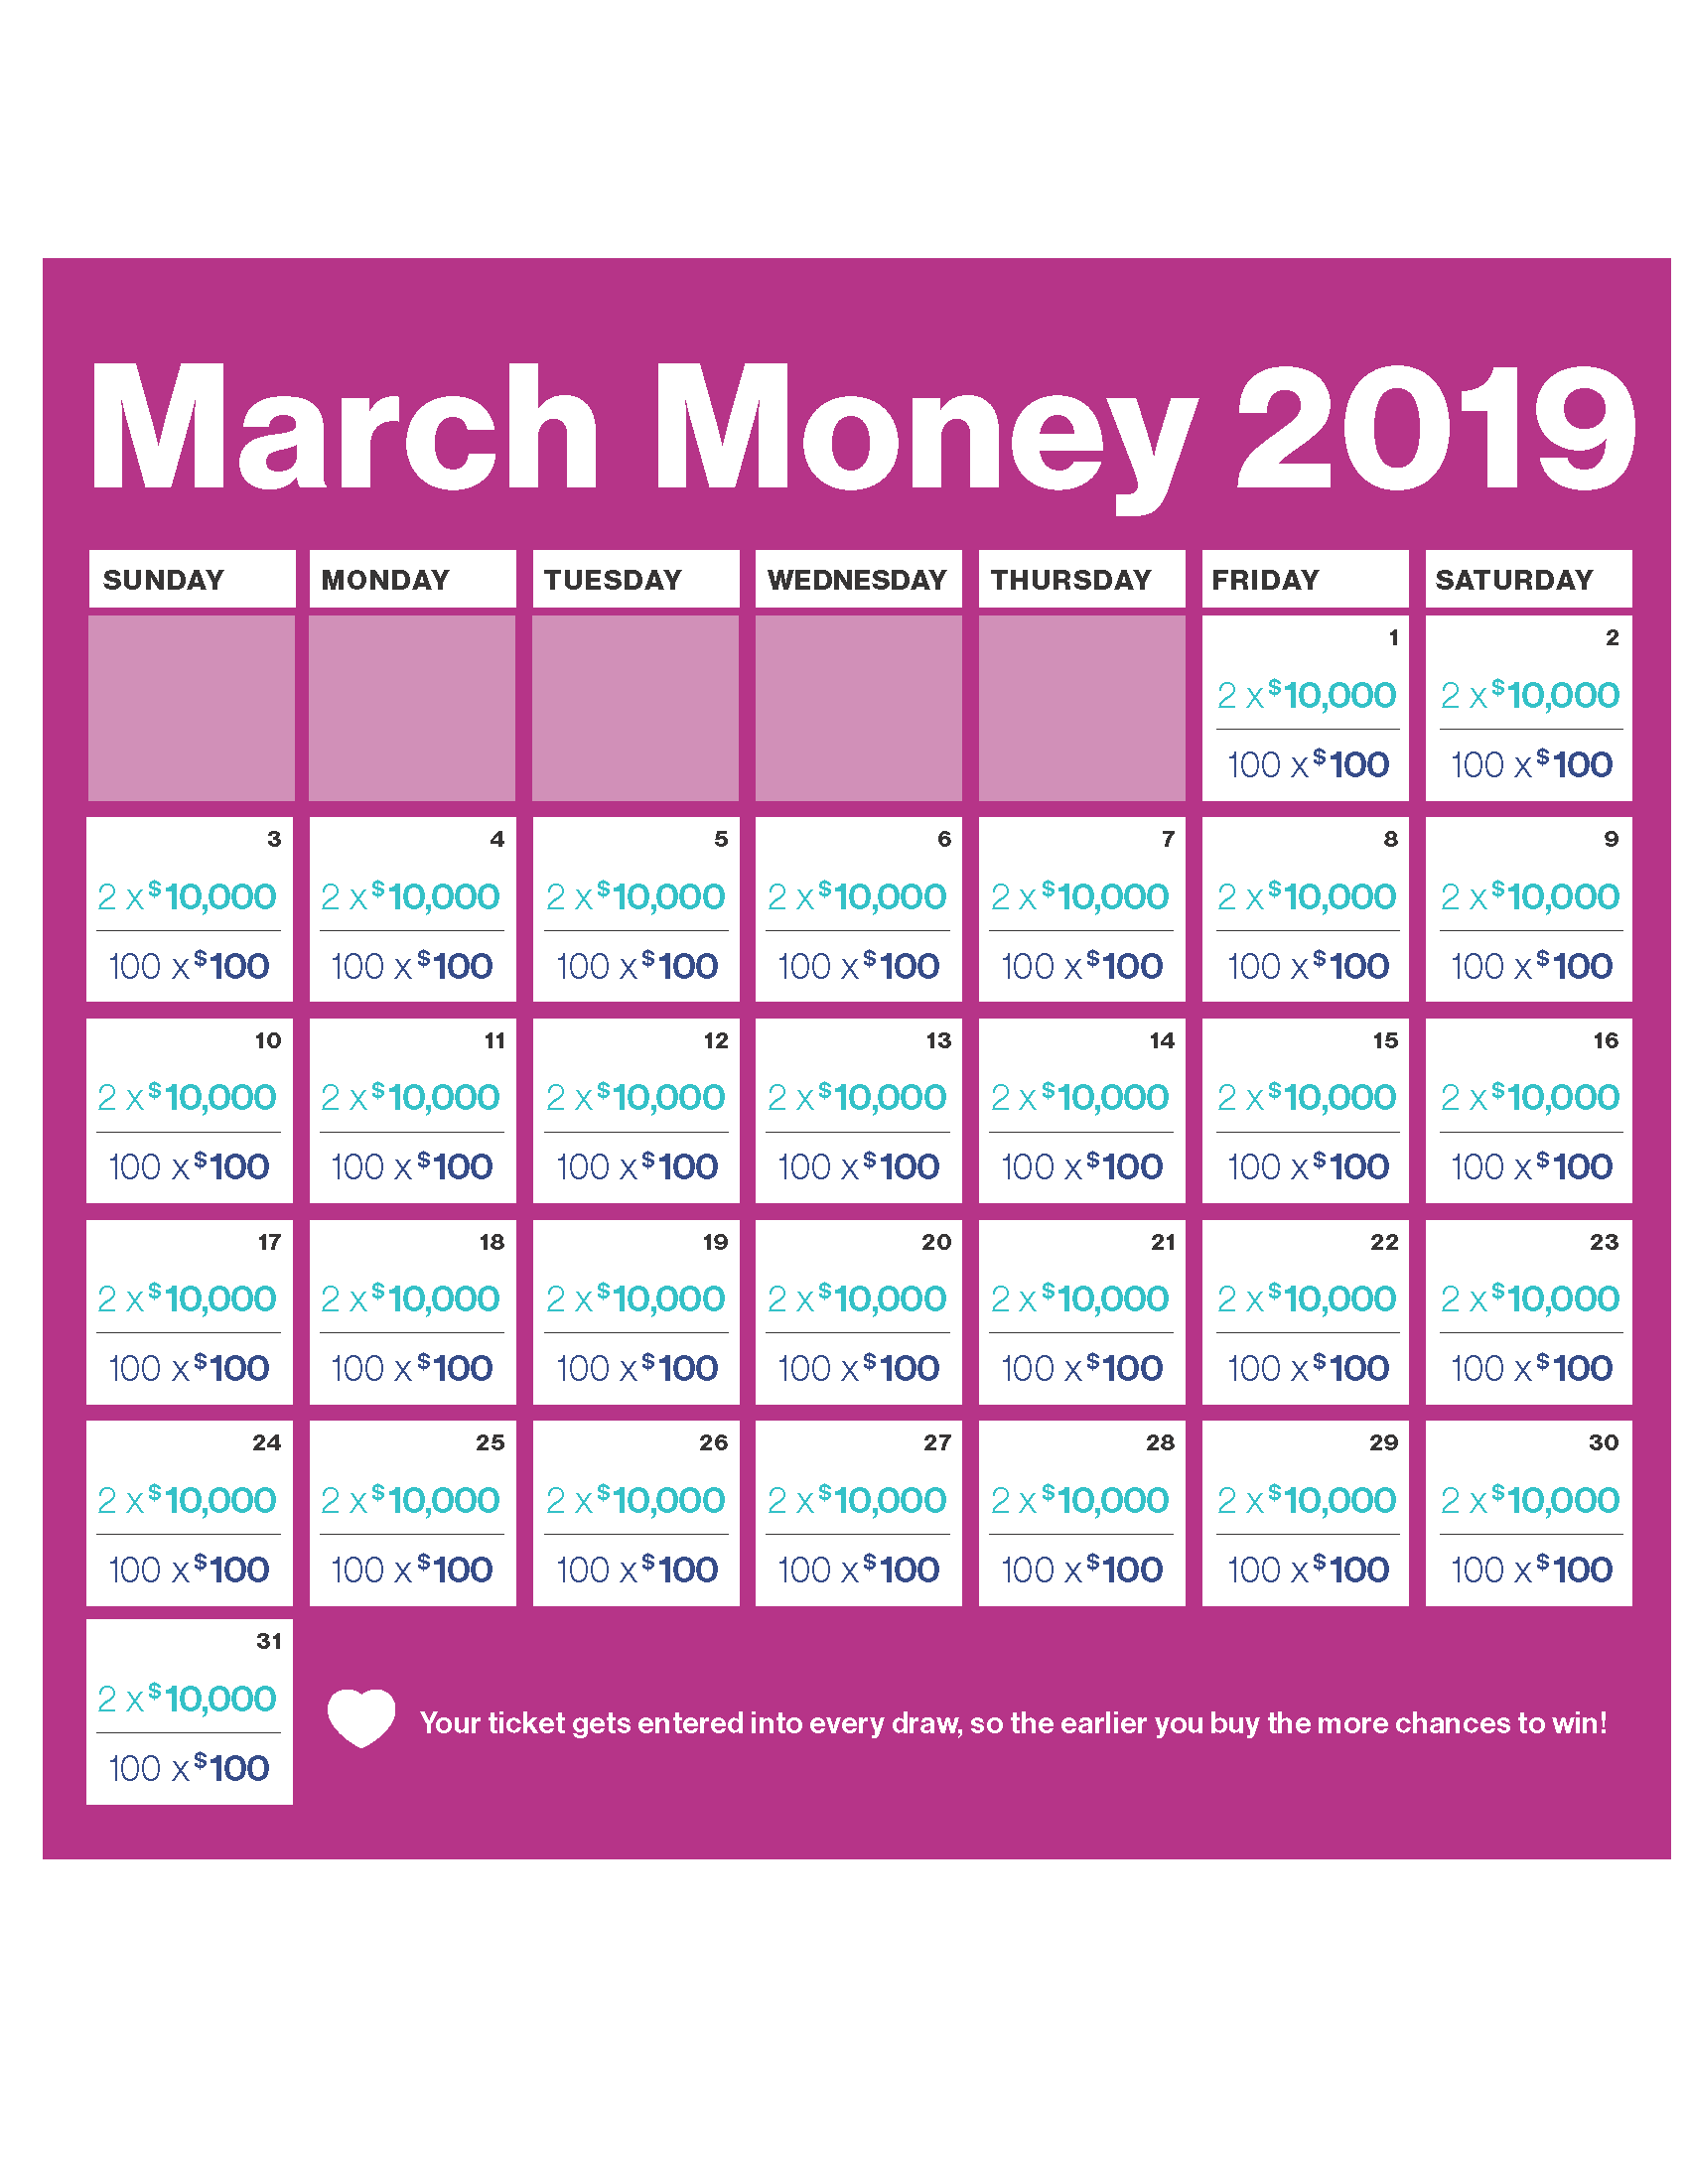 Heart And Stroke Calendar 2019 Heart and Stroke March Money Lottery 2019 | Check Your Tickets